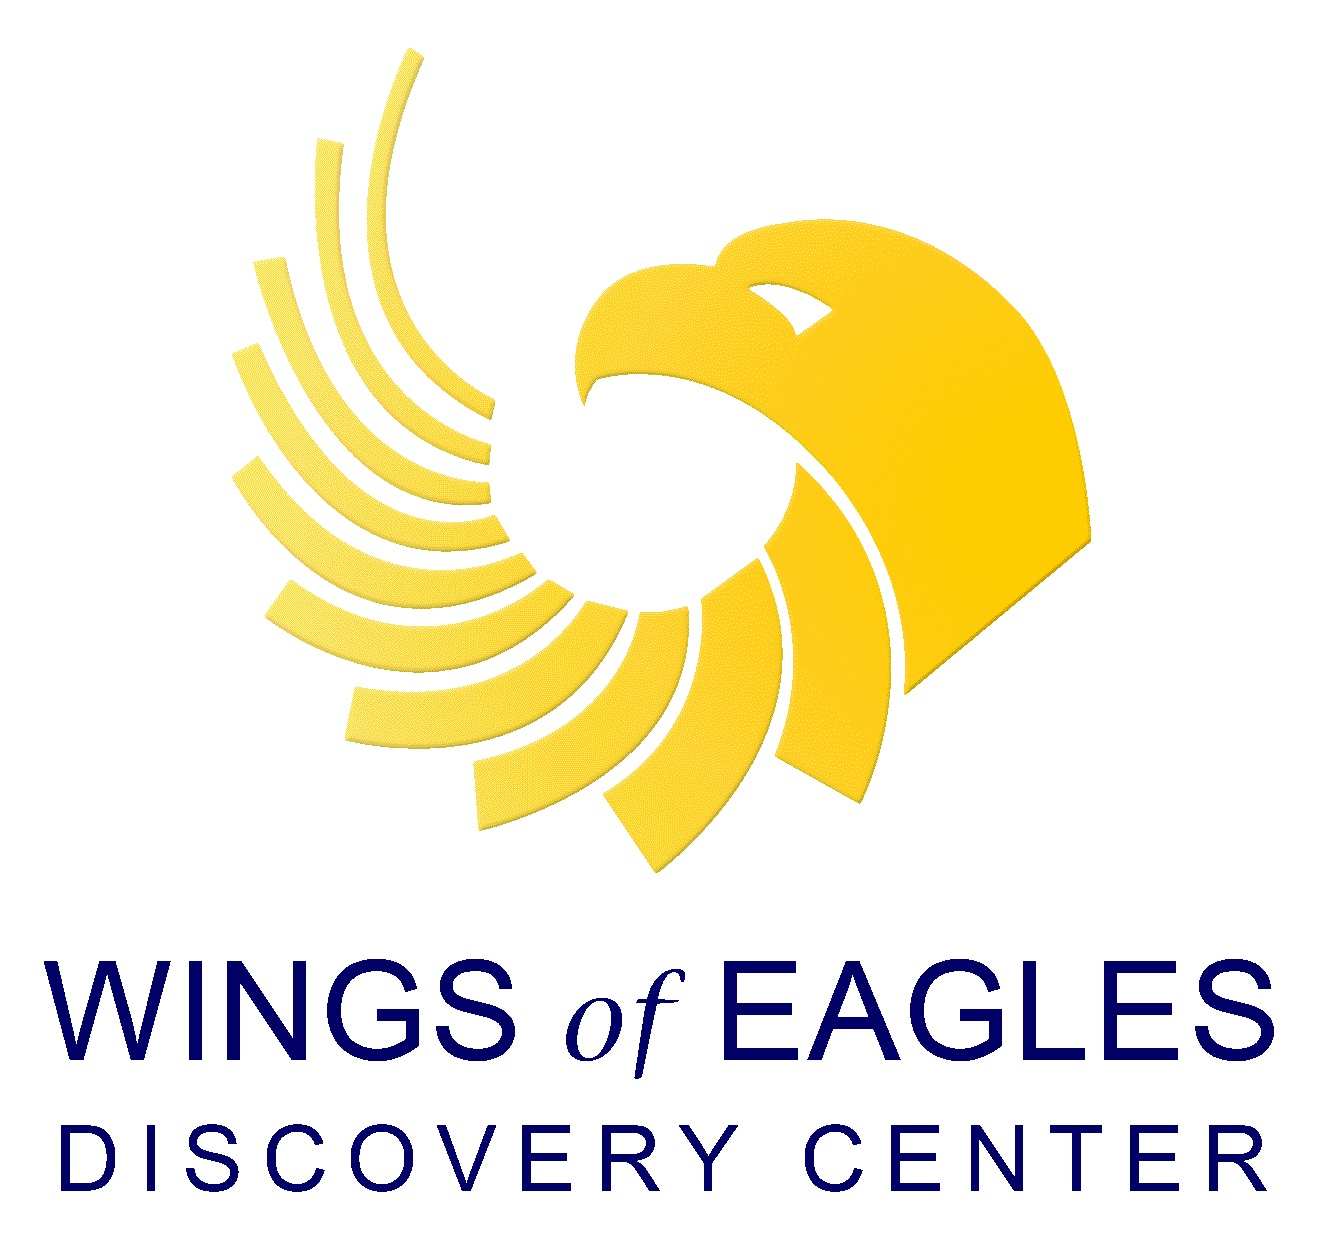 Wings of Eagles Discovery Center